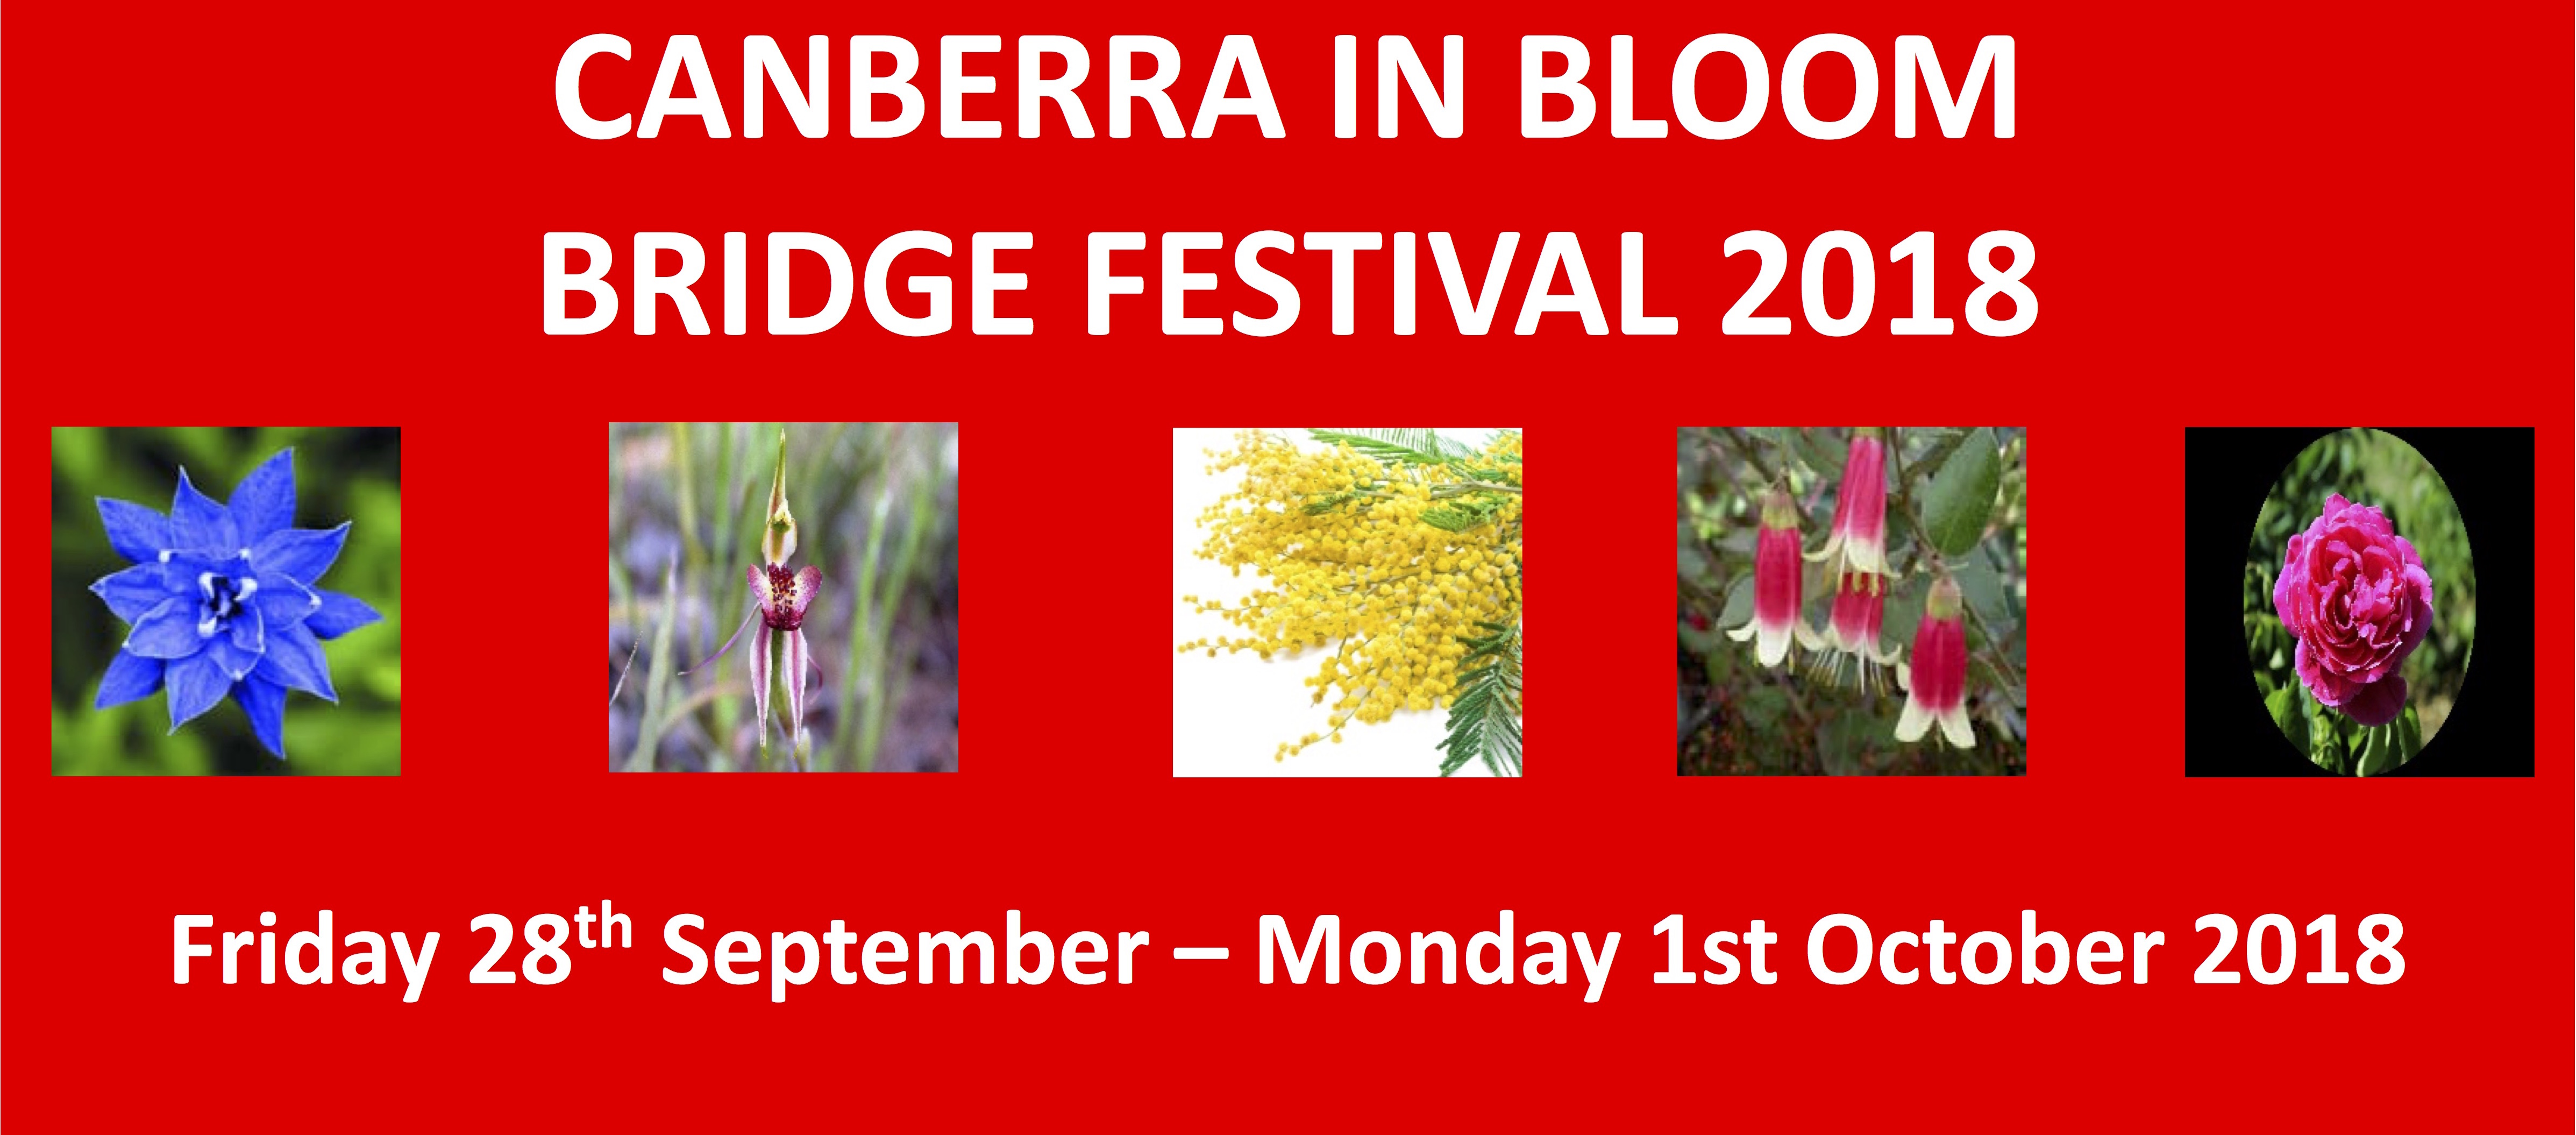 Canberra in Bloom Friday 28th September – Monday 1st October 2018